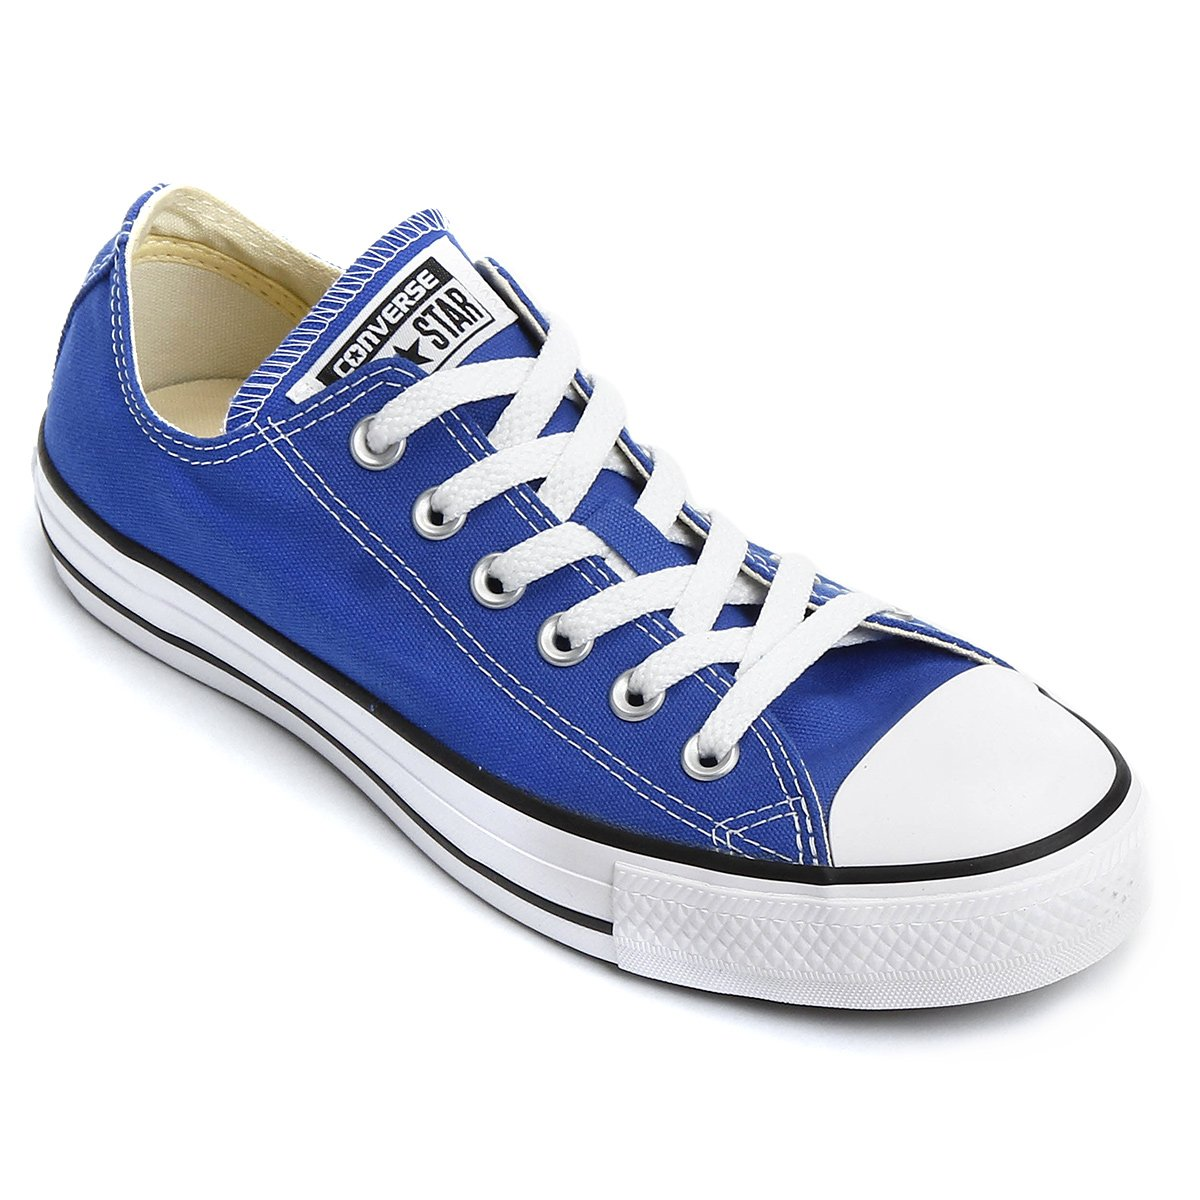 66f57d1ad14 Tênis Converse All Star Ct As Seasonal Ox - Compre Agora